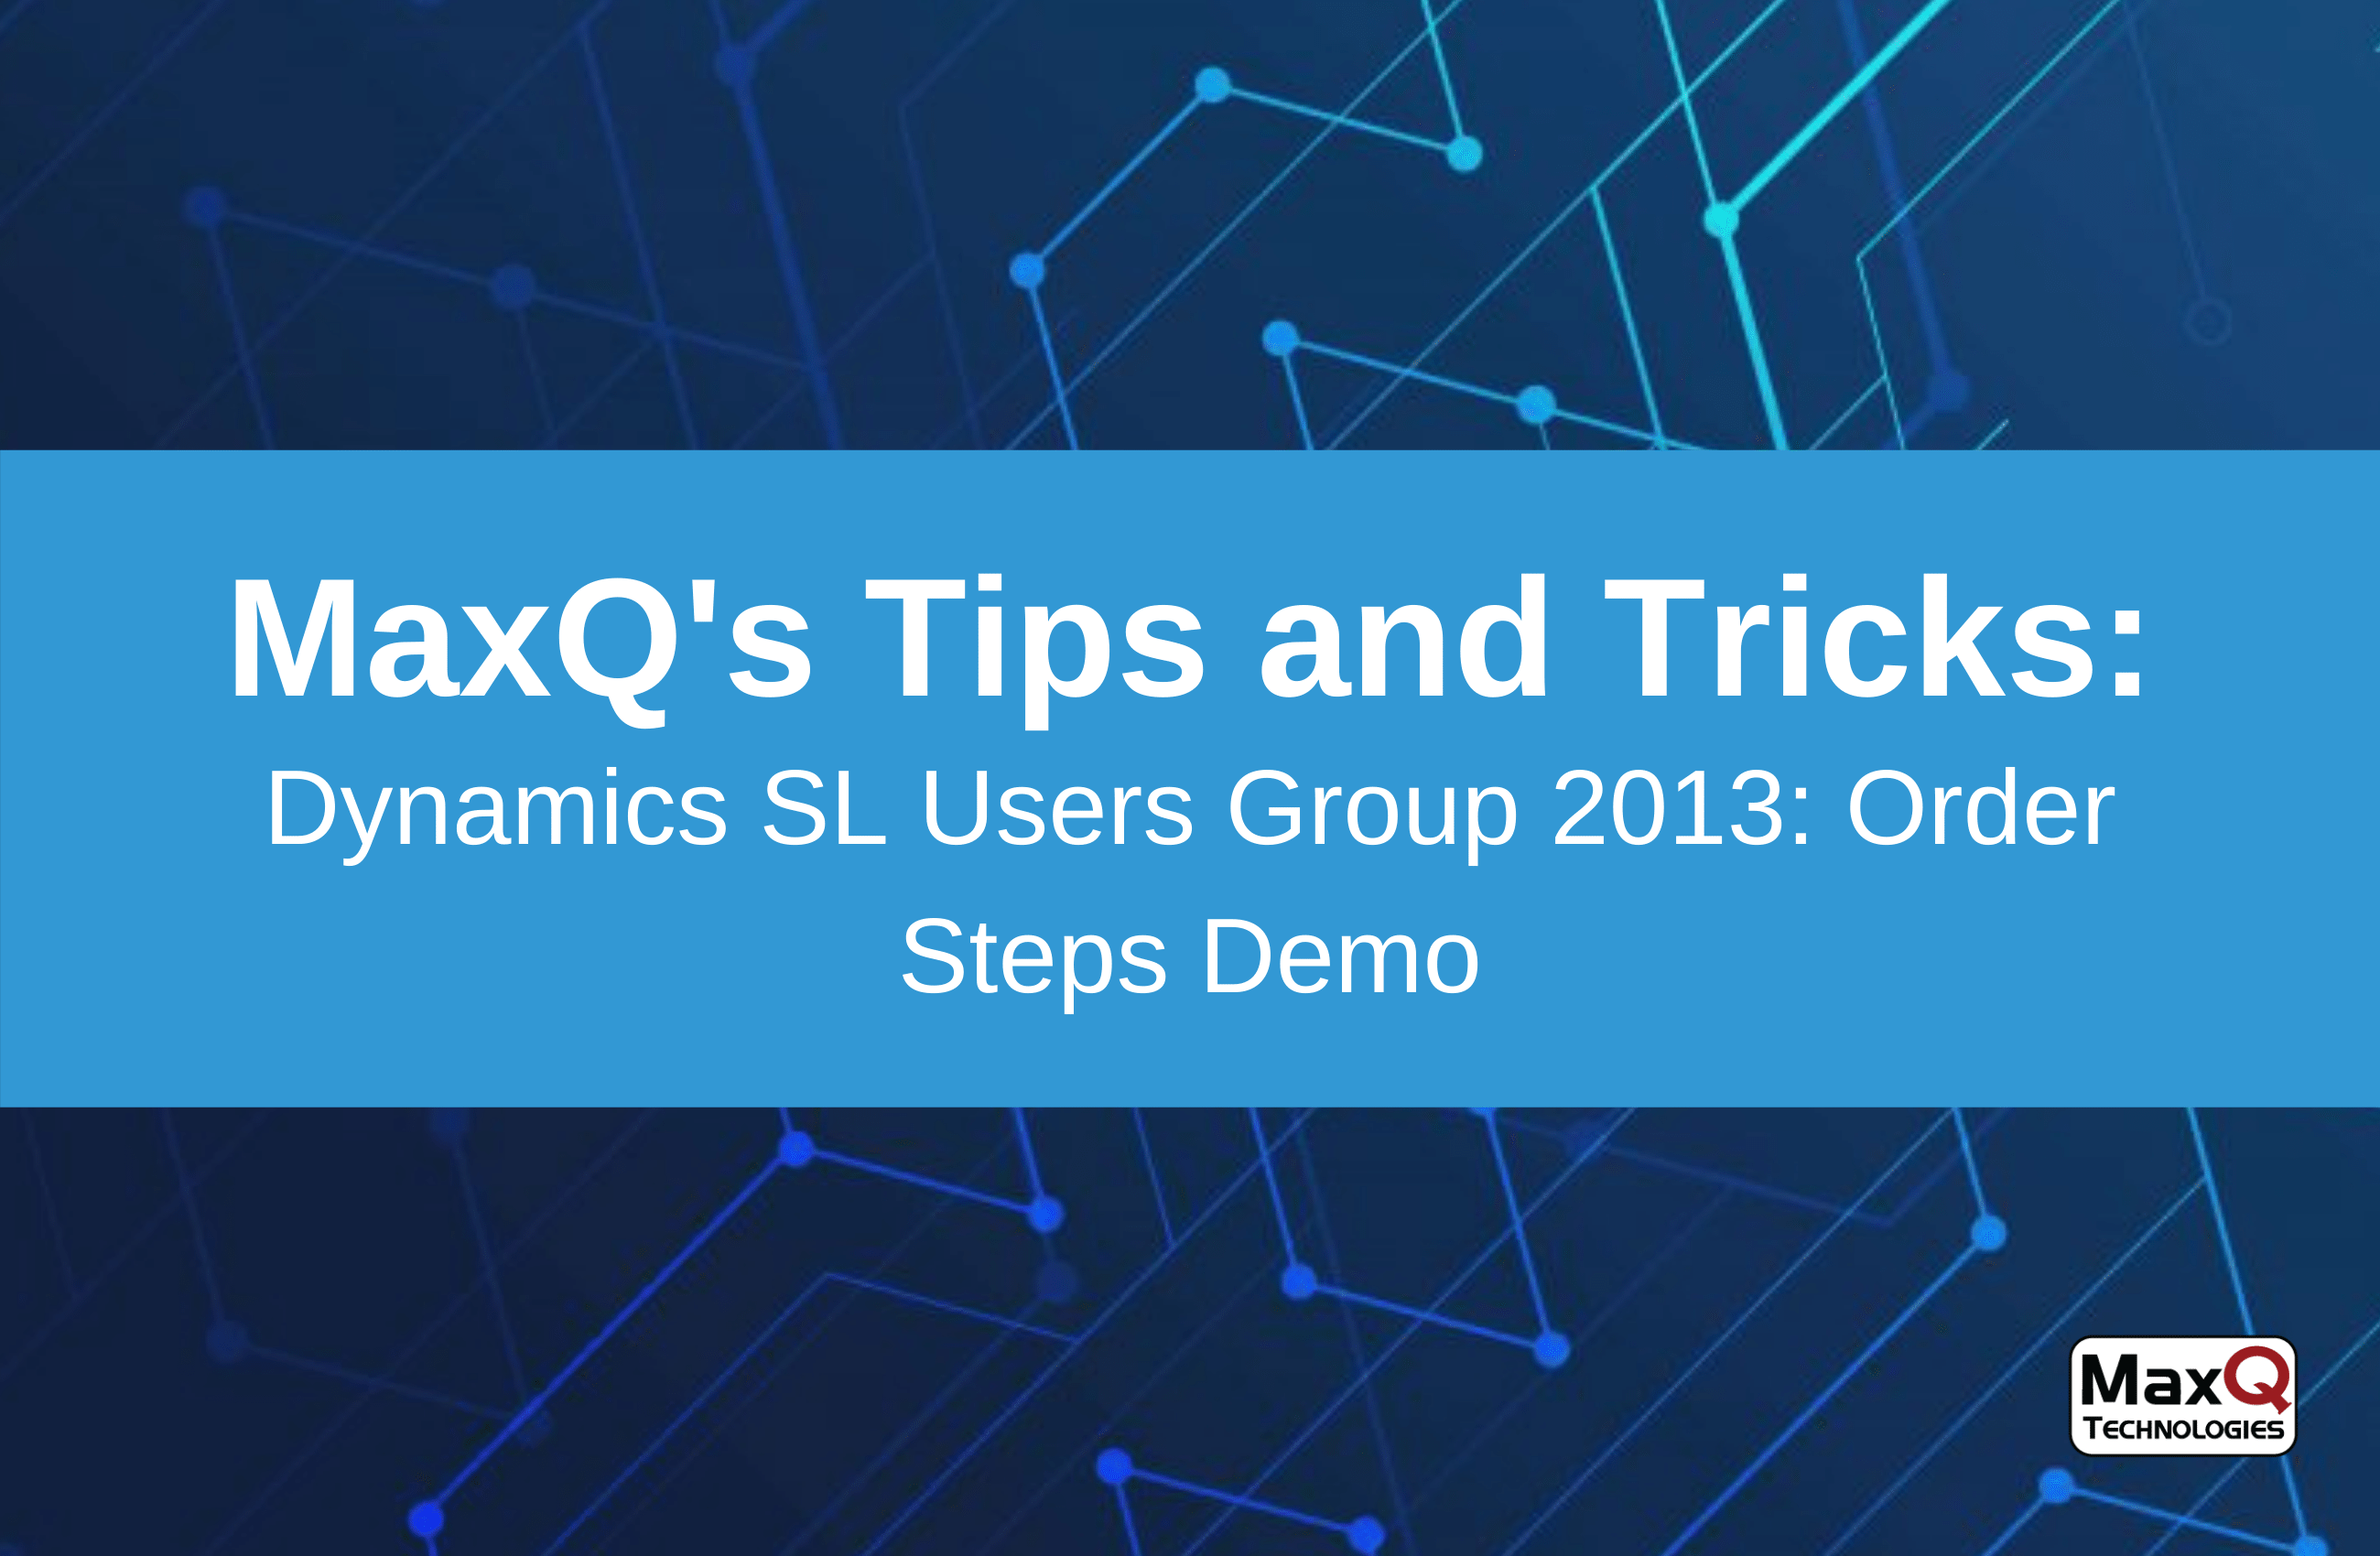 Dynamics SL Users Group 2013: Order Steps Demo